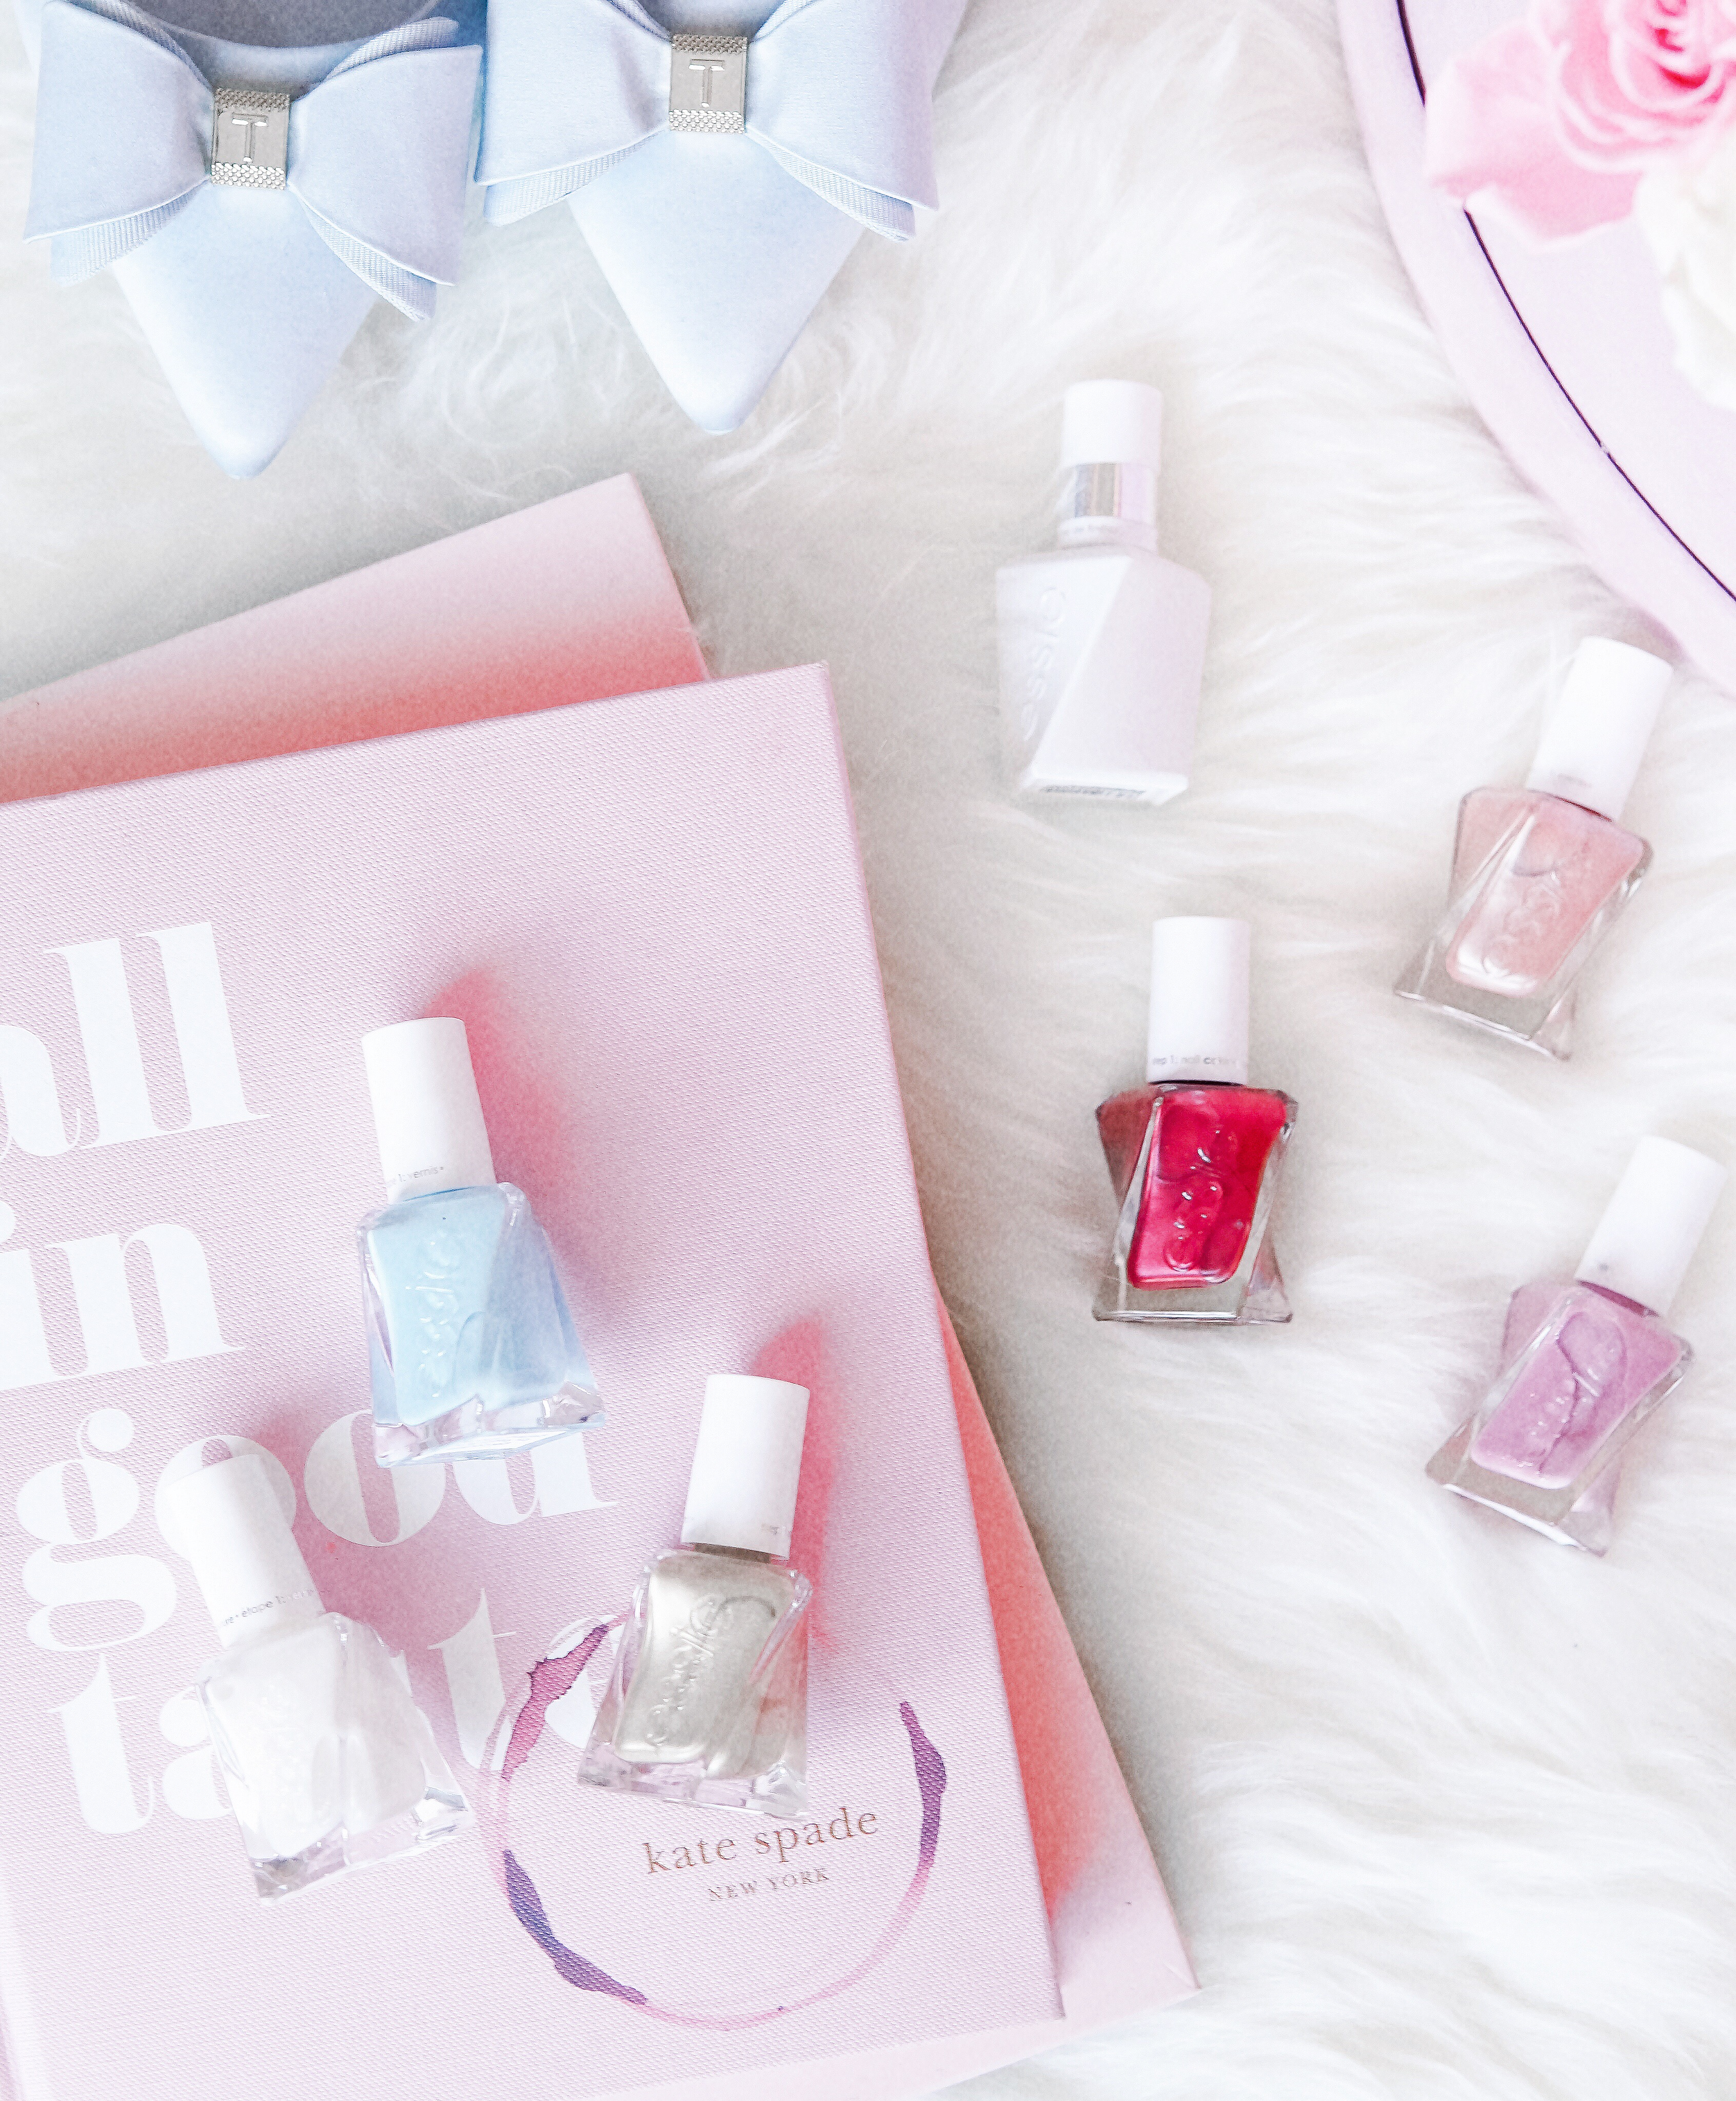 Oh My Gel – The Latest From Essie's Gel Couture Collection This Spring